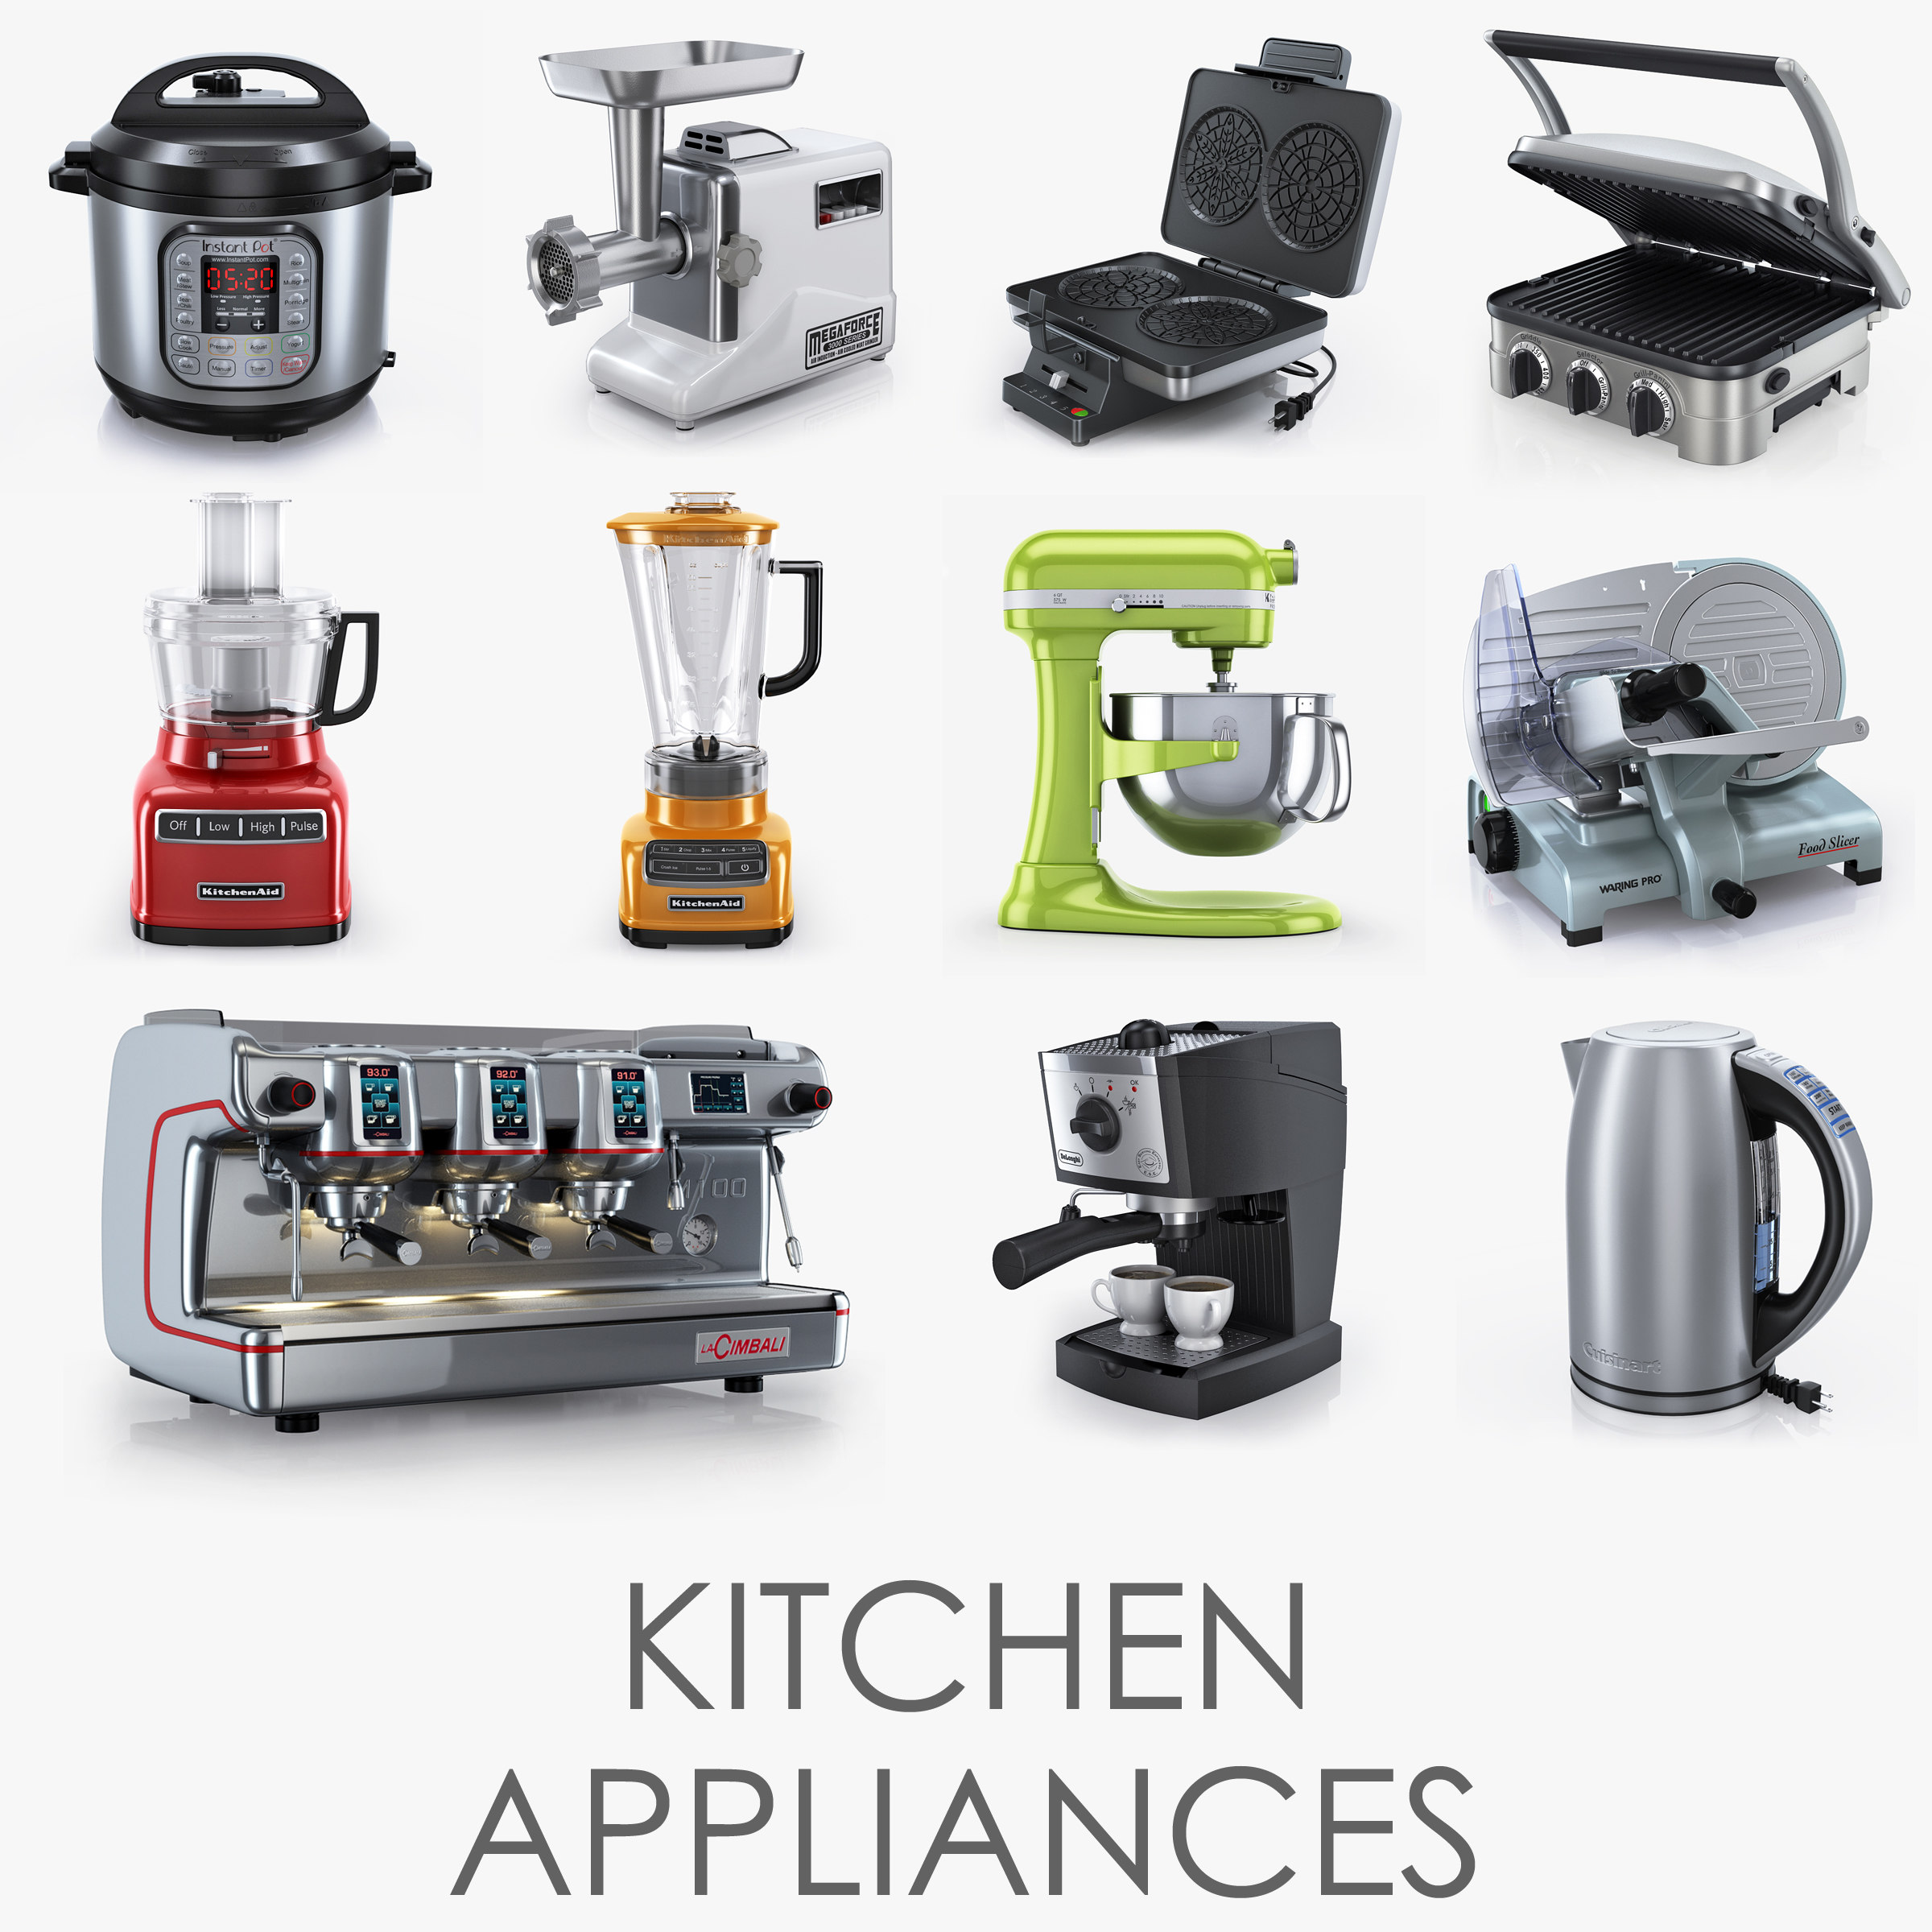 Kitchen_appliances_collection.jpg